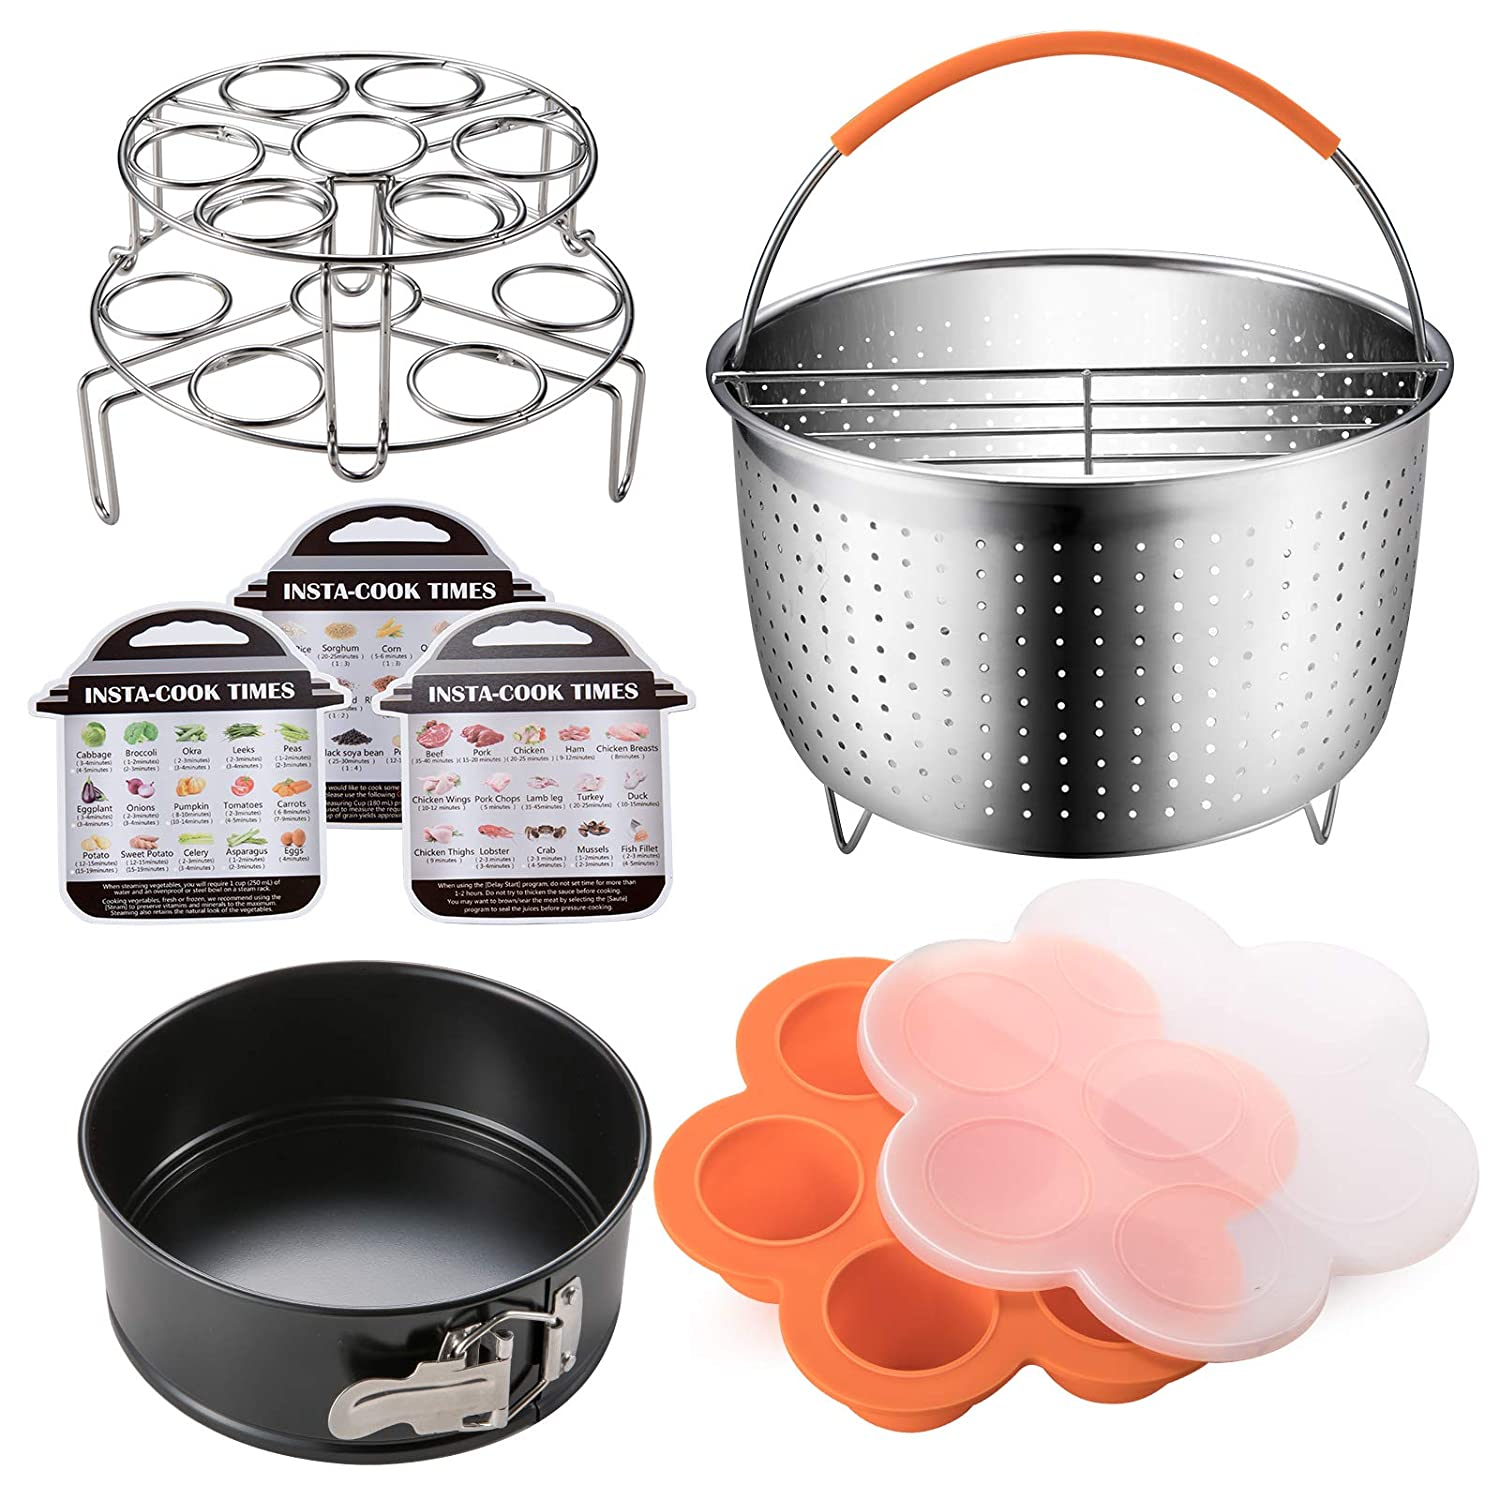 Stackable Steamer Racks Egg Bites Mold Accessories Set Compatible with Instant Pot 6,8 QT Springform Pan Magnetic Cheat Sheet by SiCheer Steamer Basket with Divider